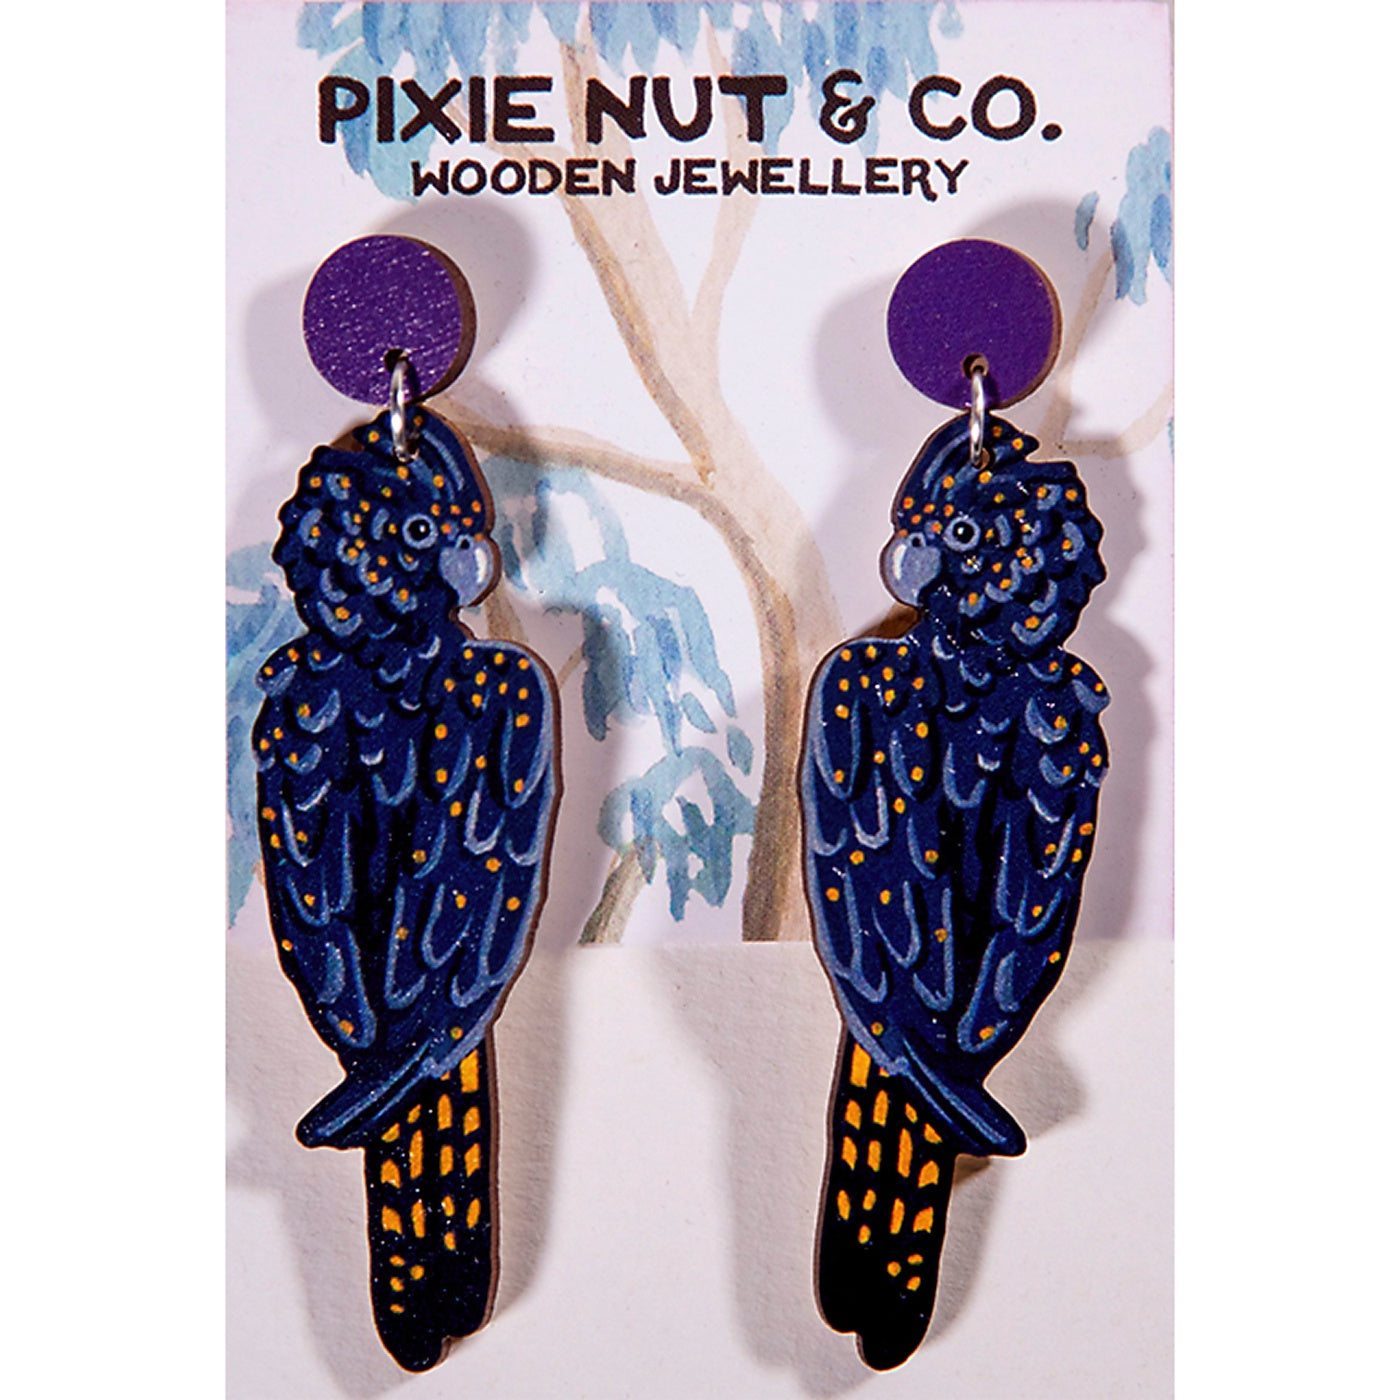 Pixie Nut & Co - Earrings - Black Cockatoo